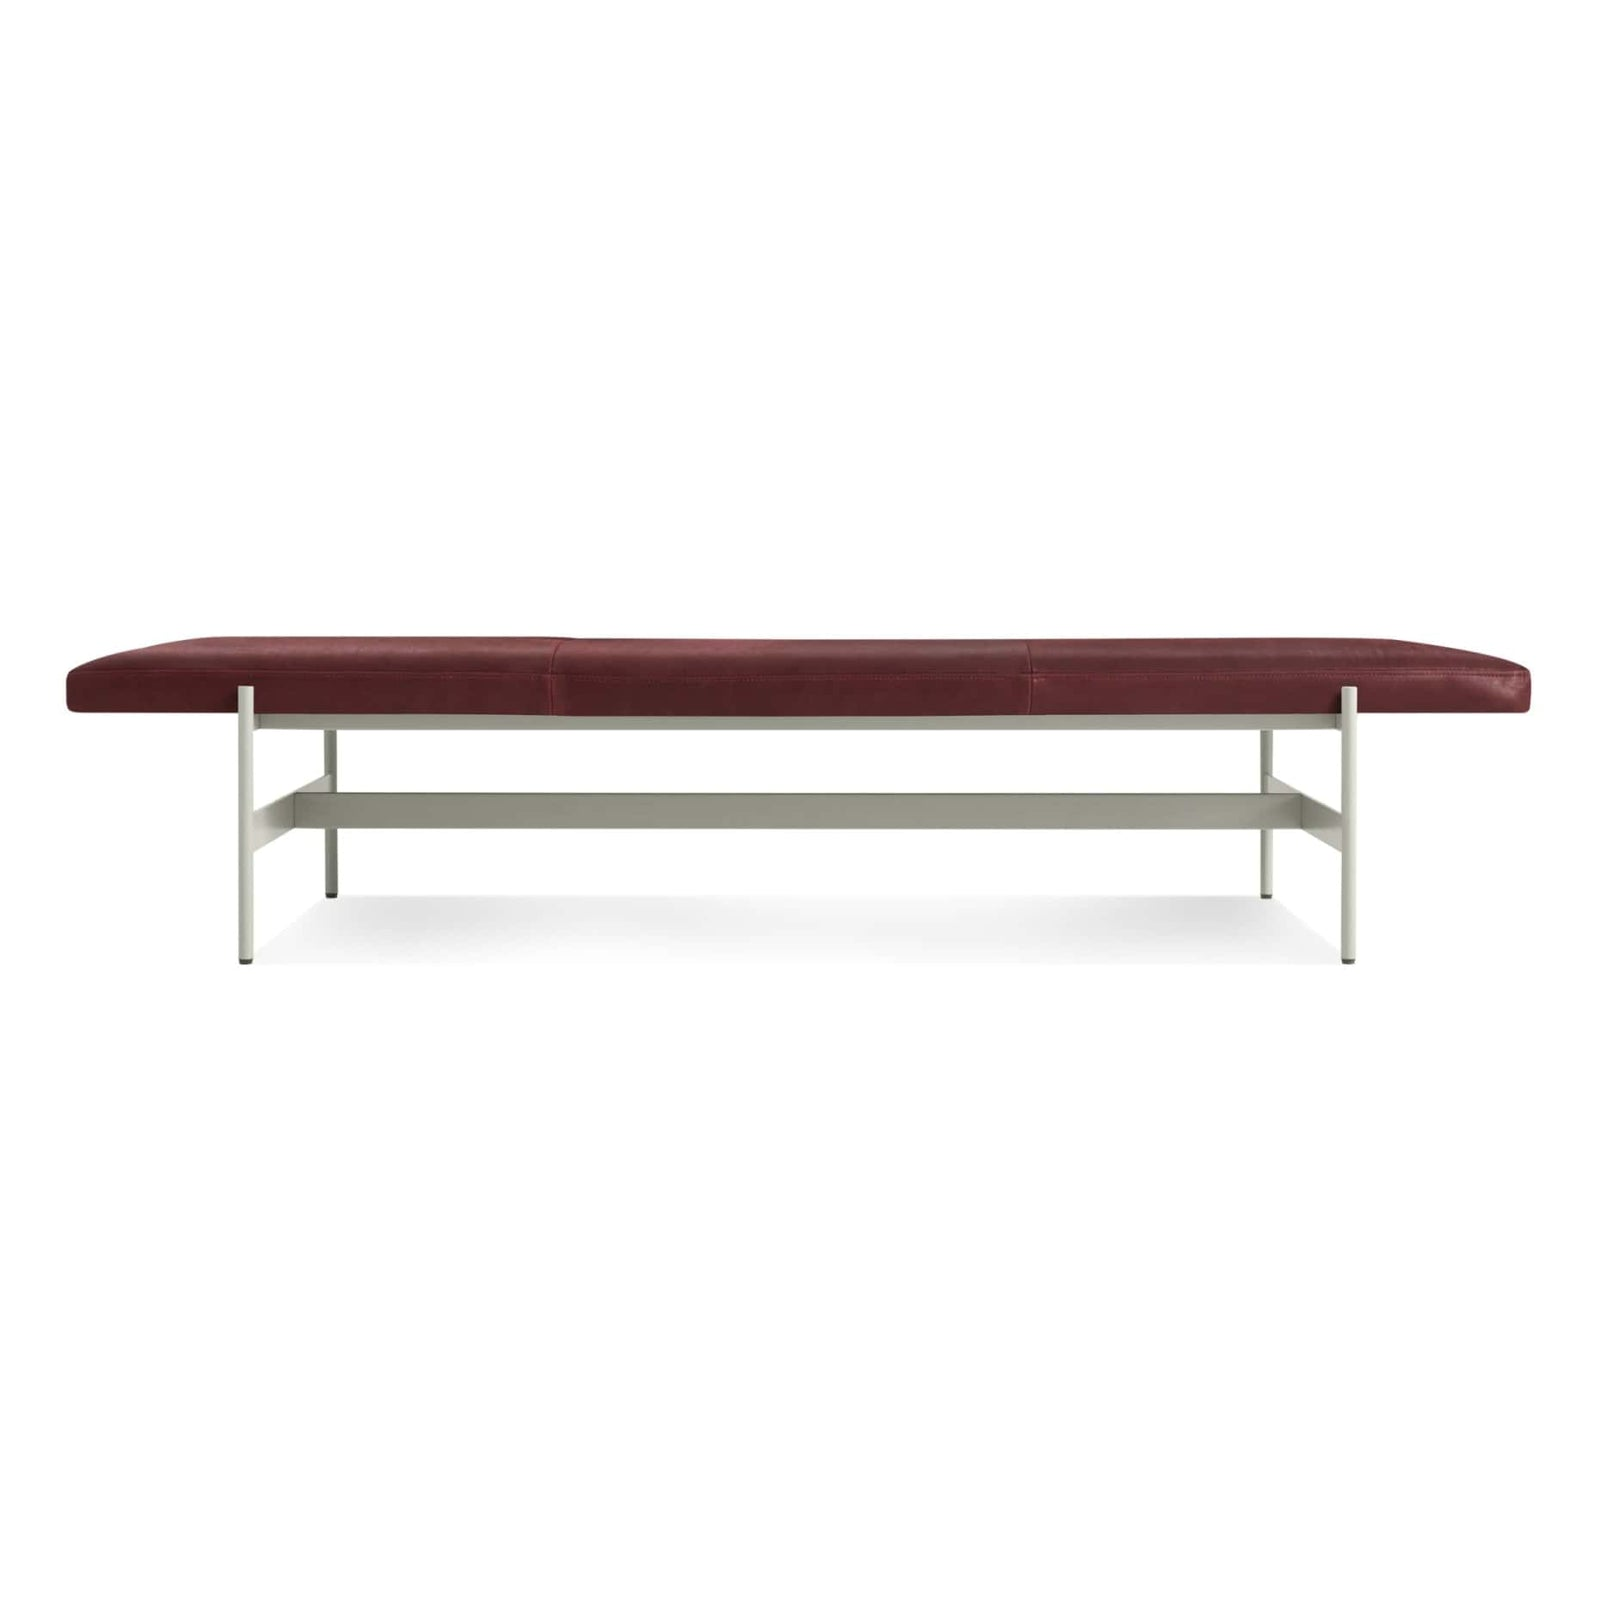 "Blu Dot Furniture 75"" / Oxblood Leather / Putty Daybench"